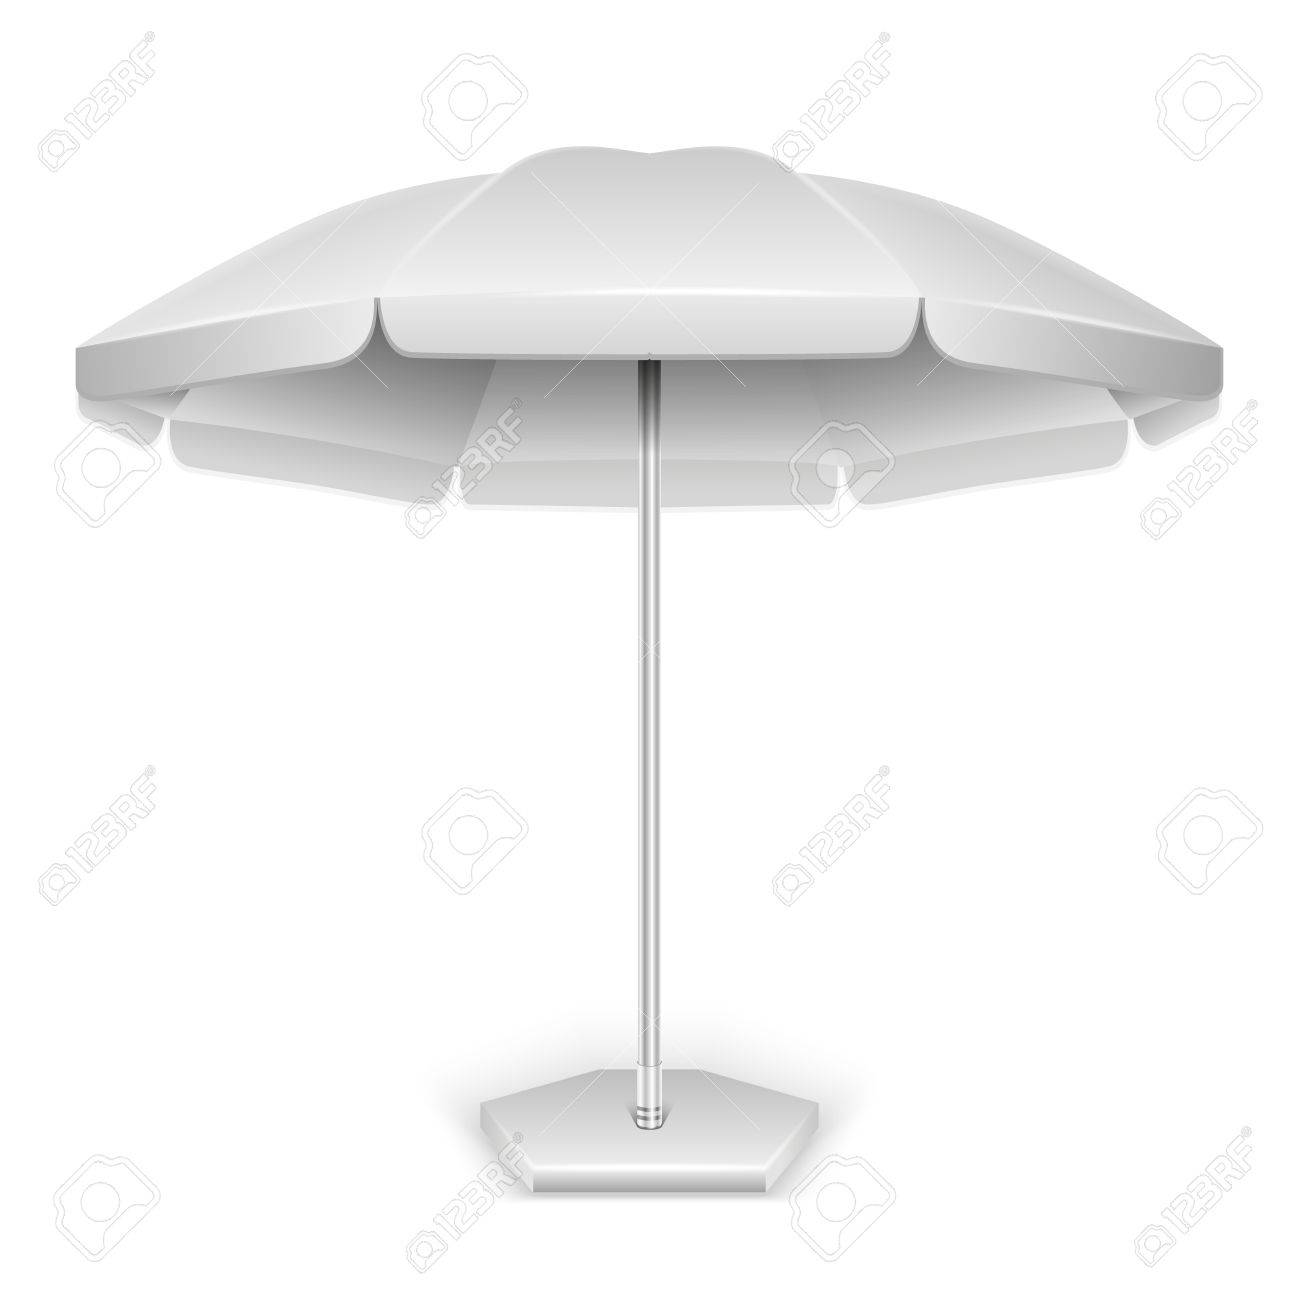 Vector   White Outdoor Beach, Garden Umbrella, Parasol For Protection From  Sun And Rain Isolated On White Background. Vector Illustration